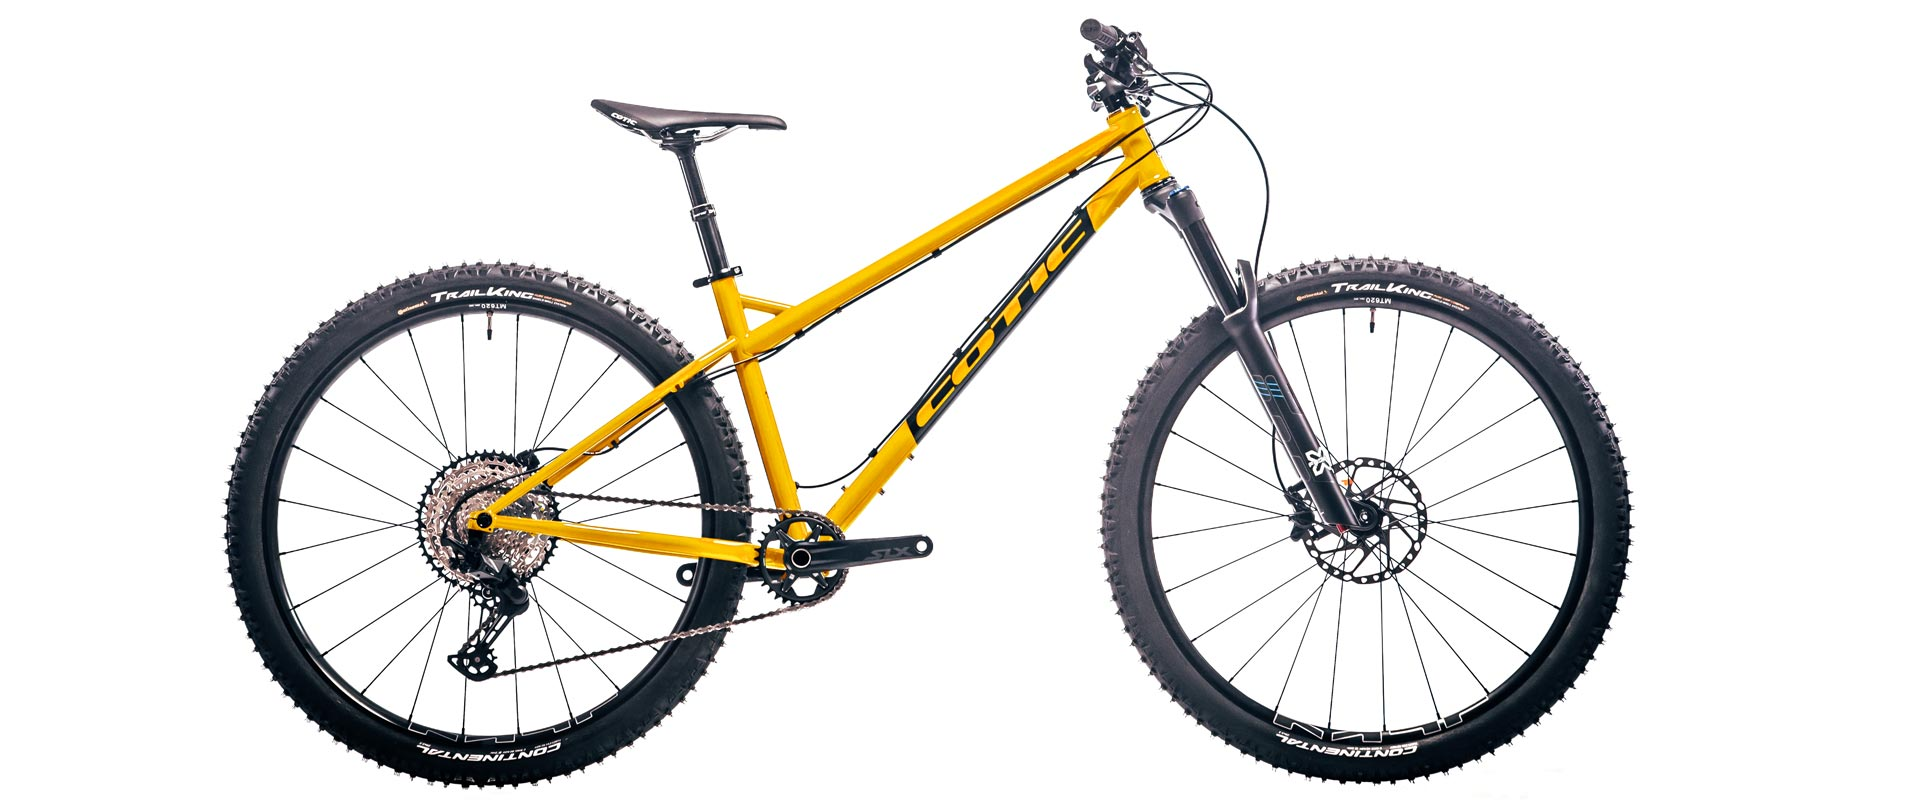 Cotic, steel, 853, BFe, MAX, frames, frame, mountain, bike, orange, Reynolds